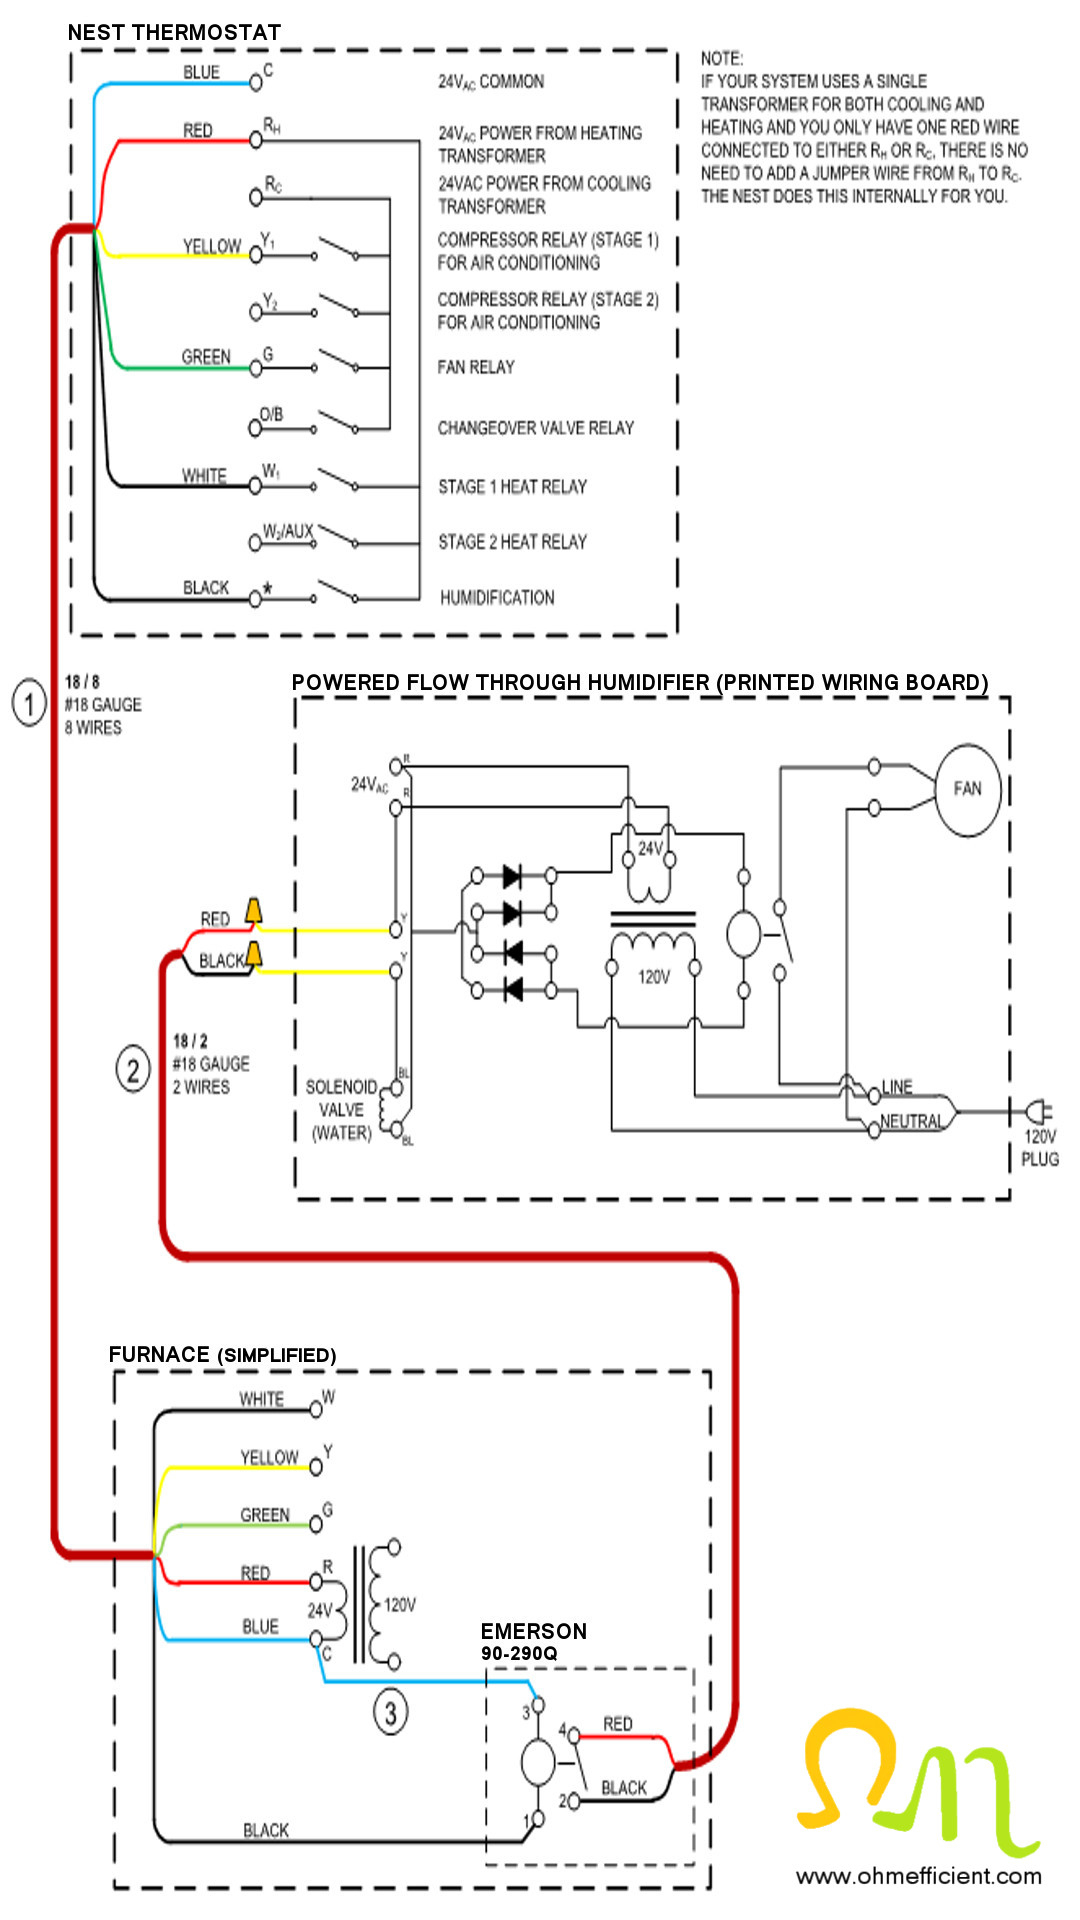 How To Connect & Setup A Nest Thermostat To Function As A Humidistat - Wiring Diagram For Nest Thermostat With Humidifier